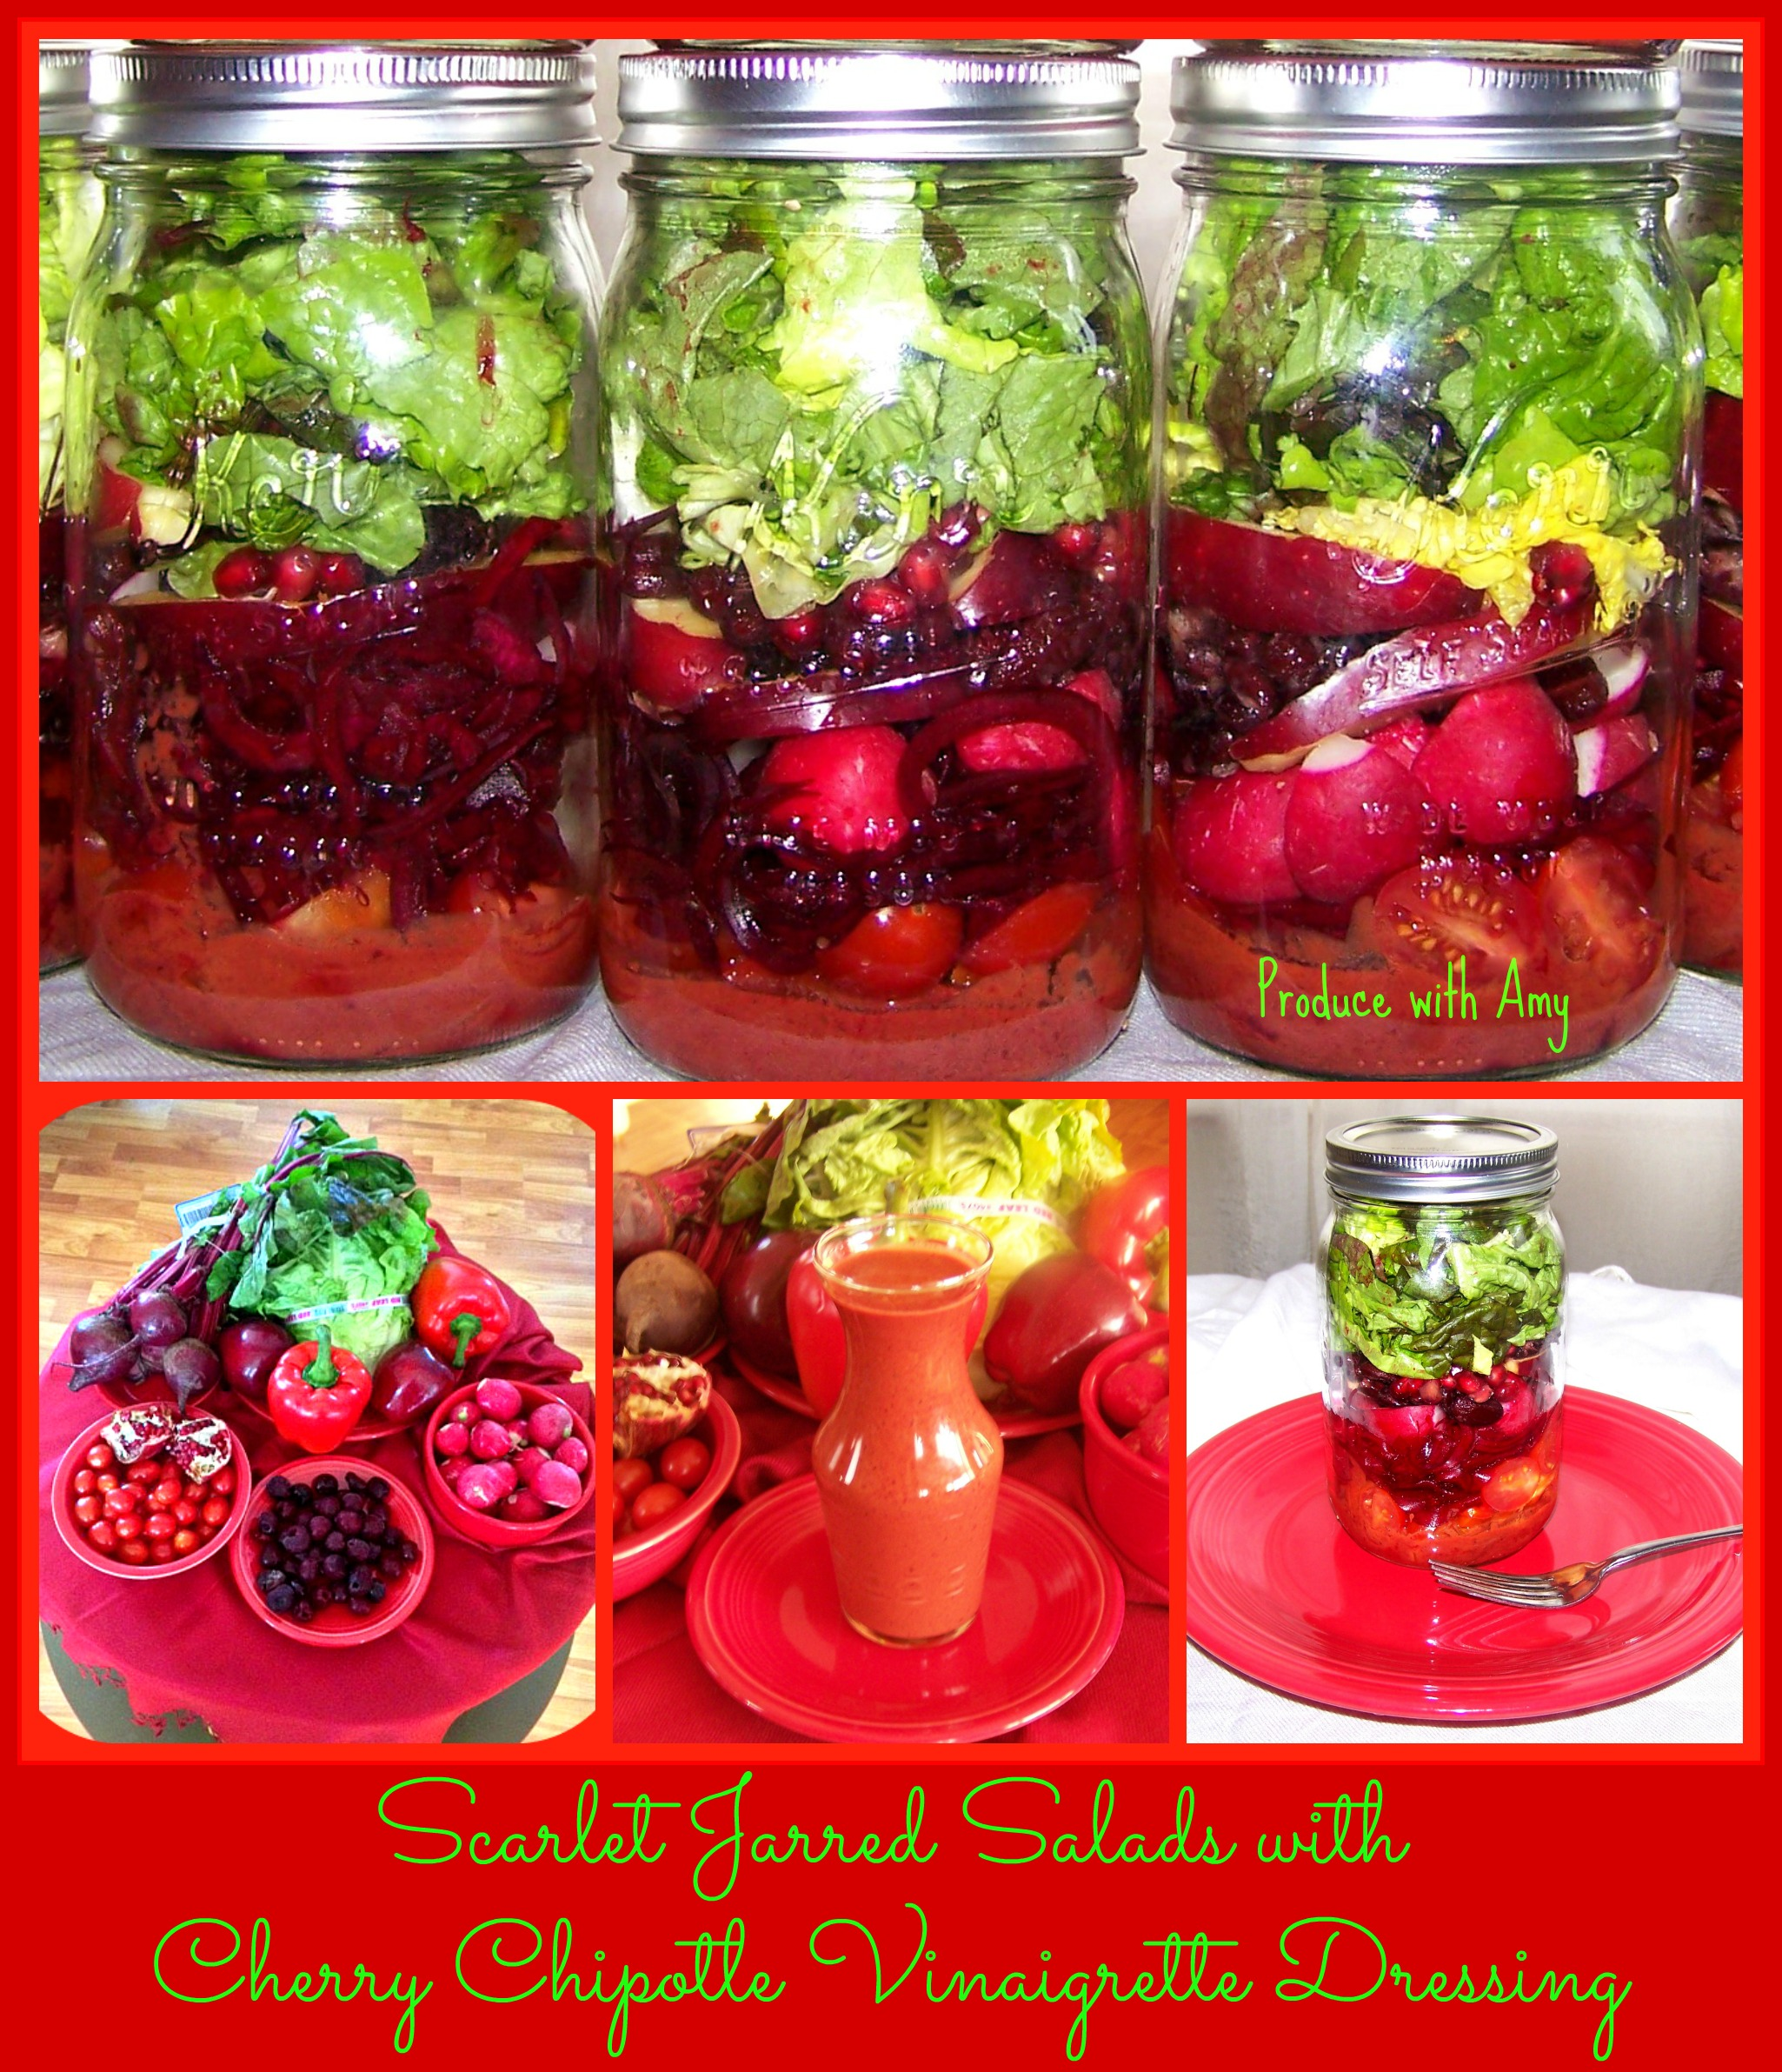 Scarlet Jarred Salads with Cherry Chipotle Vinaigrette Dressing